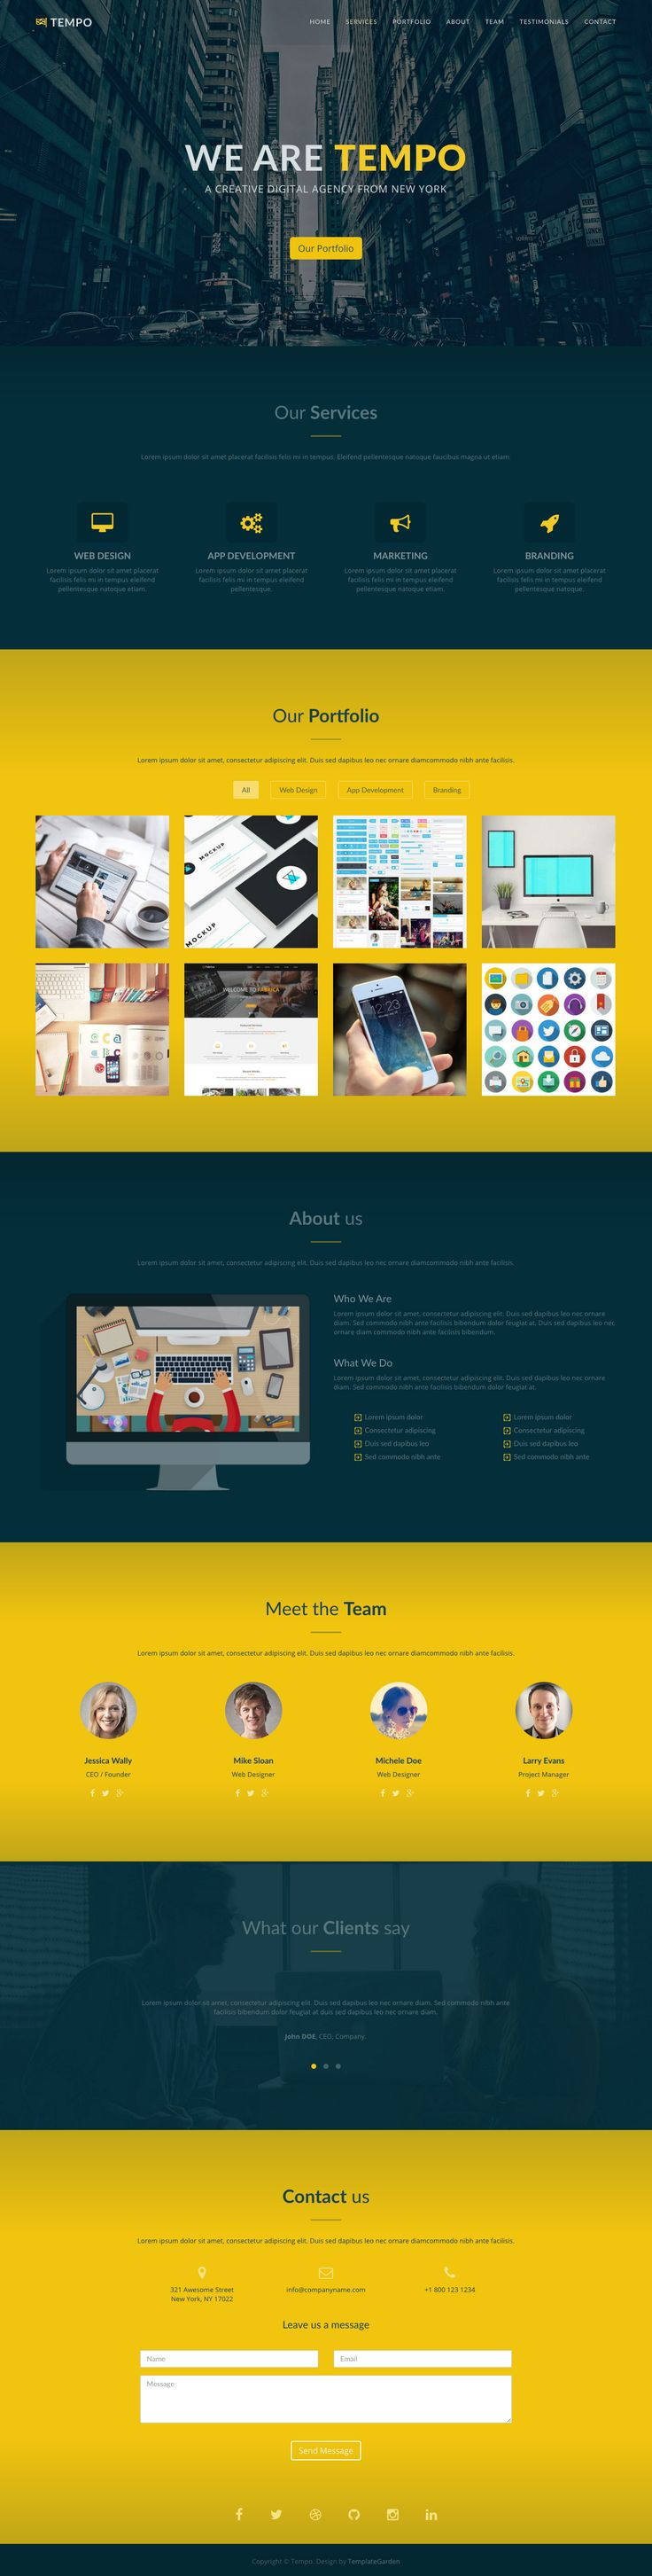 'Tempo' is a free One Page HTML template suited for a digital agency. Sections include services, portfolio (with filter and lightbox), team, testimonial slider and contact form. A decent free offering this by TemplateGarden to help anyone on a tight budget.